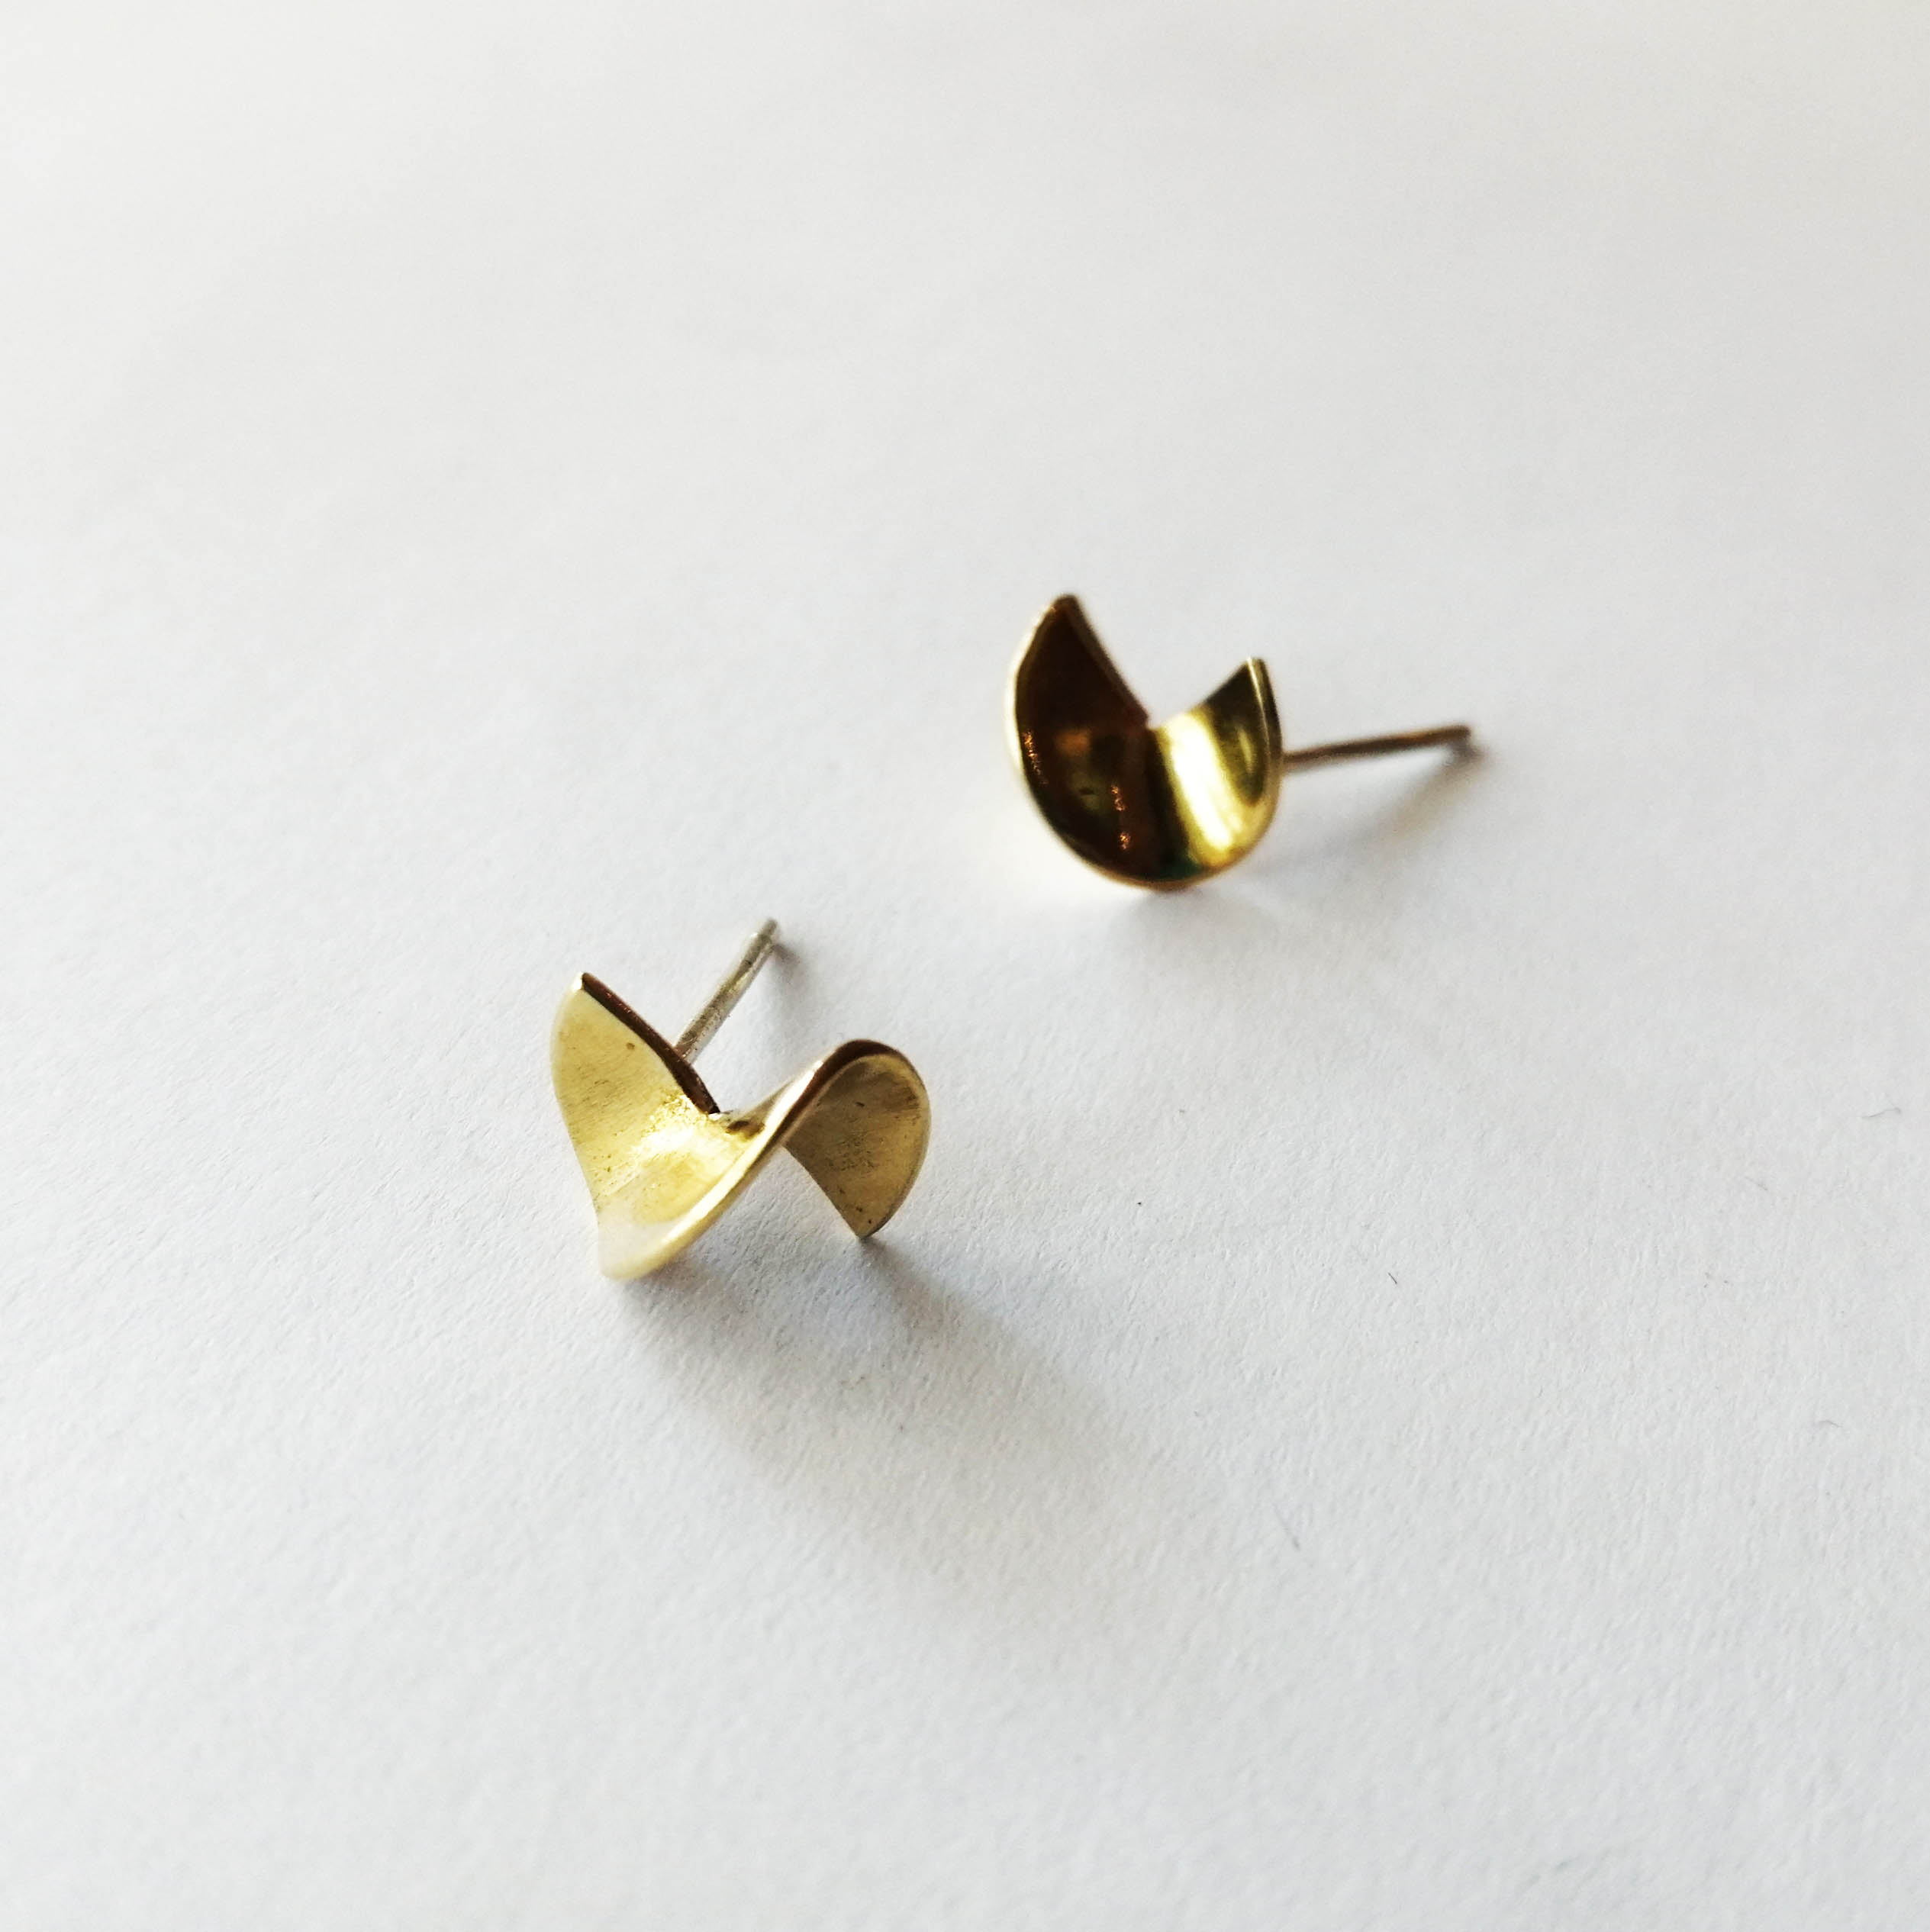 TWISTY Stud Earrings